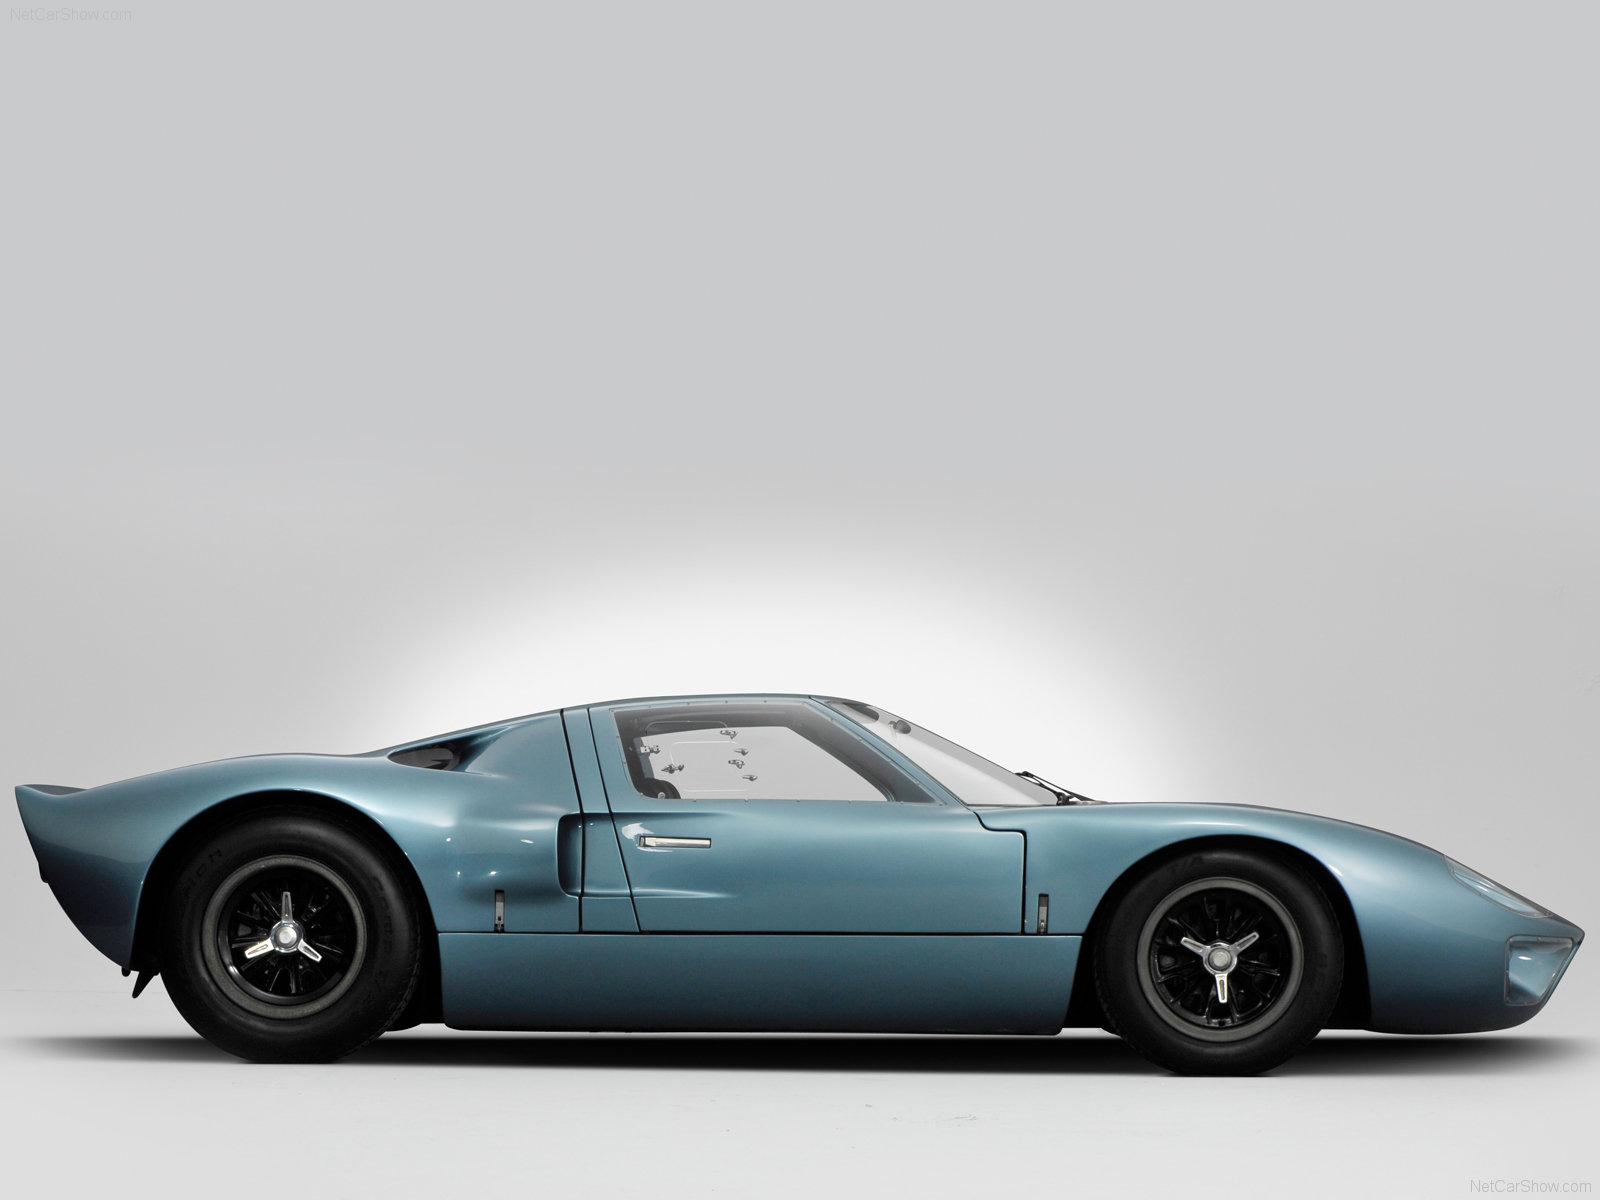 Ford Gt40 Wallpaper 5124 Hd Wallpapers in Cars   Imagescicom 1600x1200